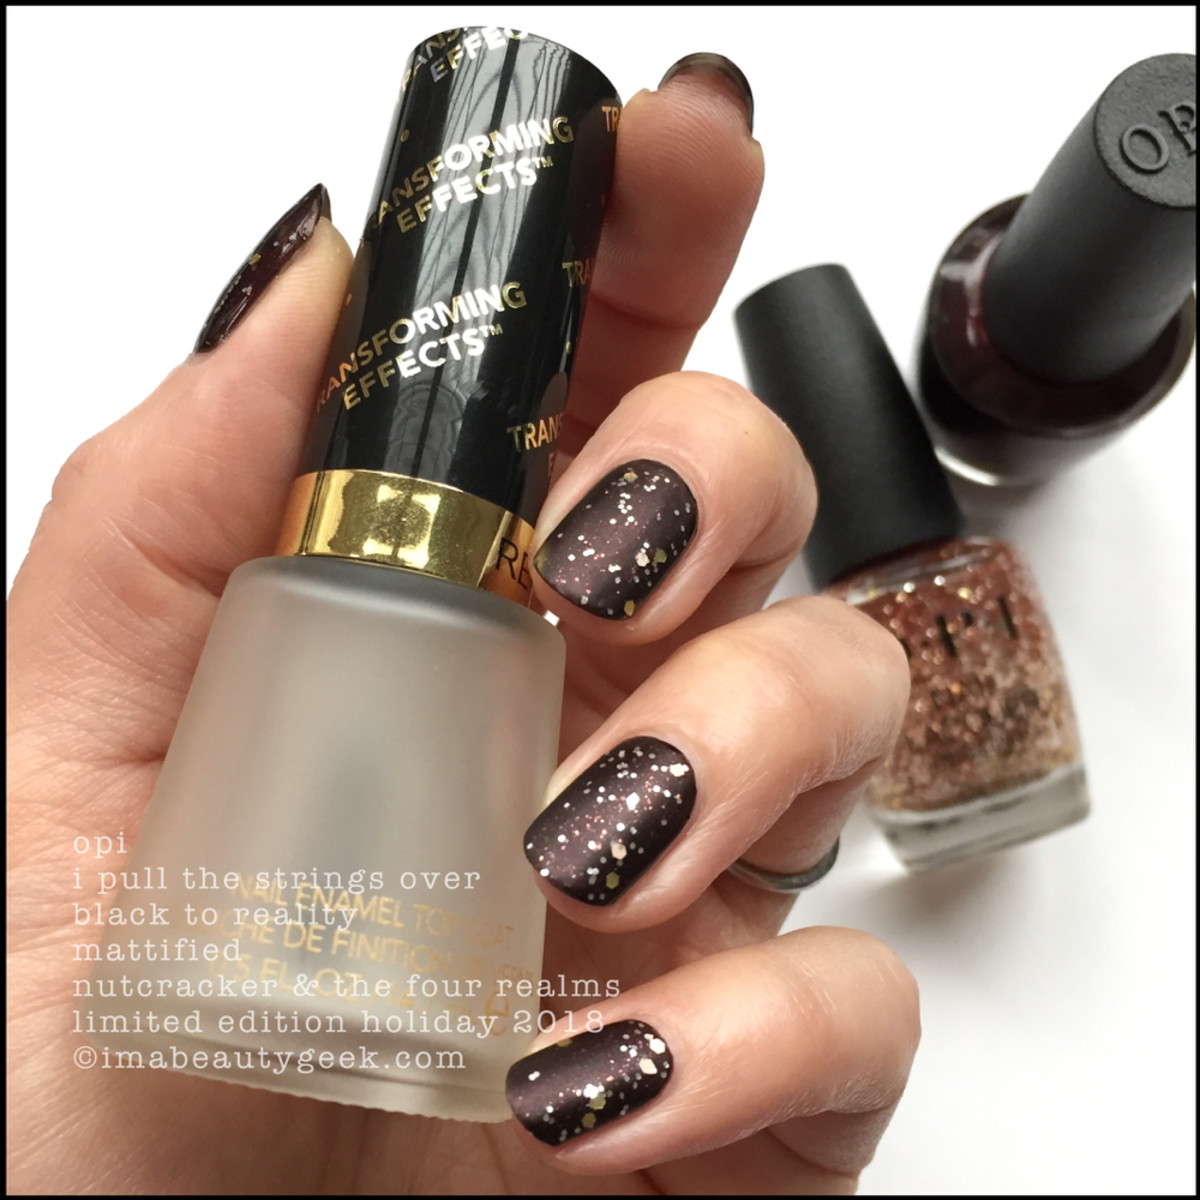 OPI I Pull the Strings over Black to Reality mattified - OPI Nutcracker Holiday 2018